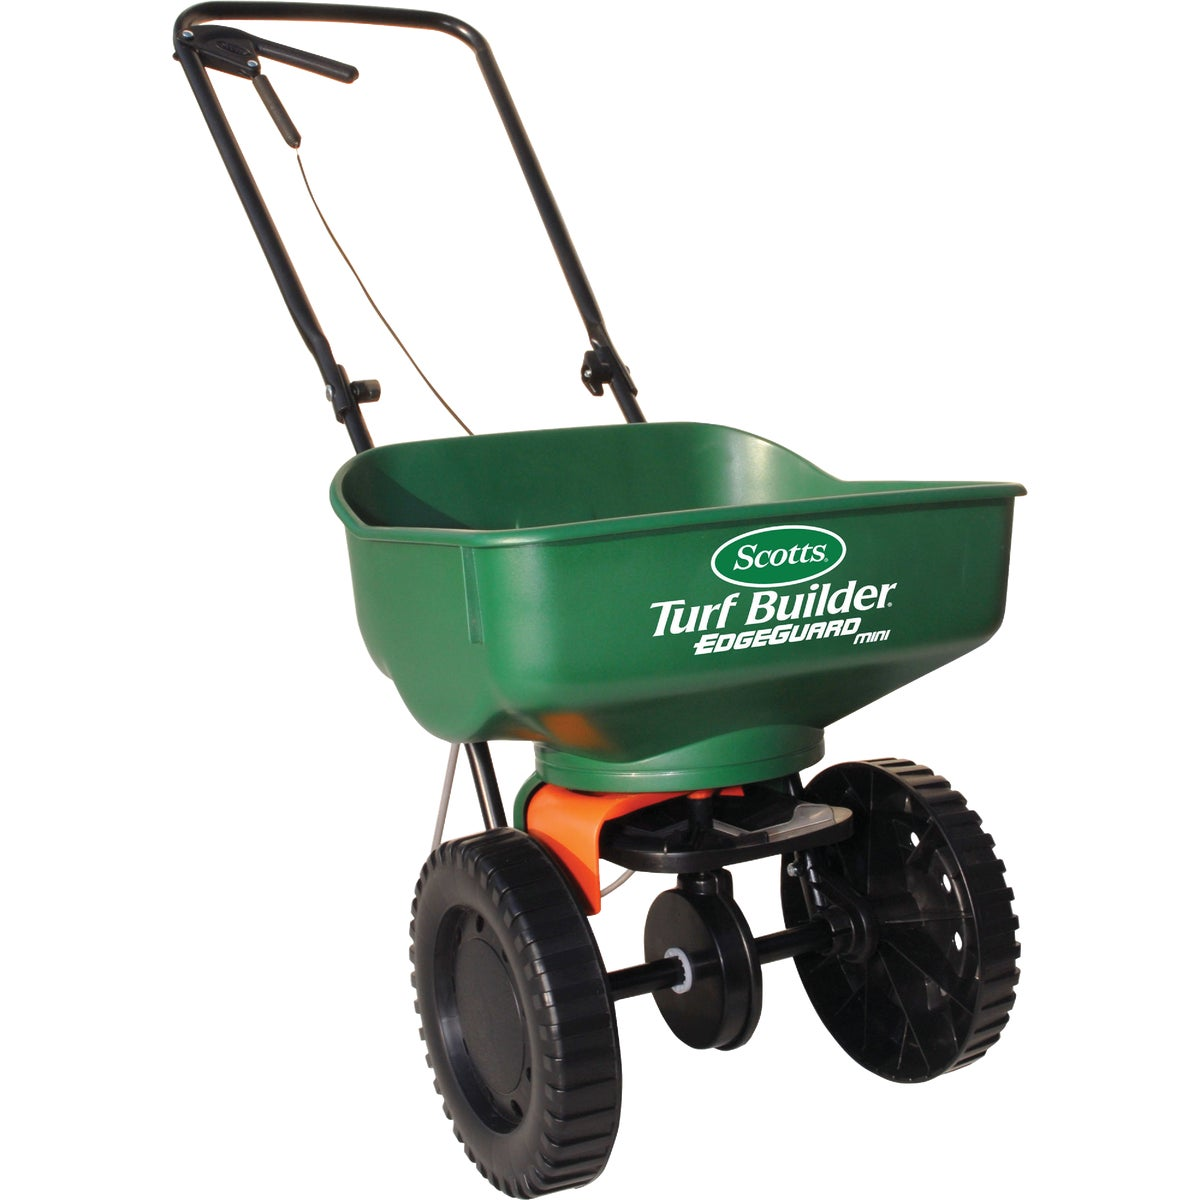 MINI LAWN SPREADER